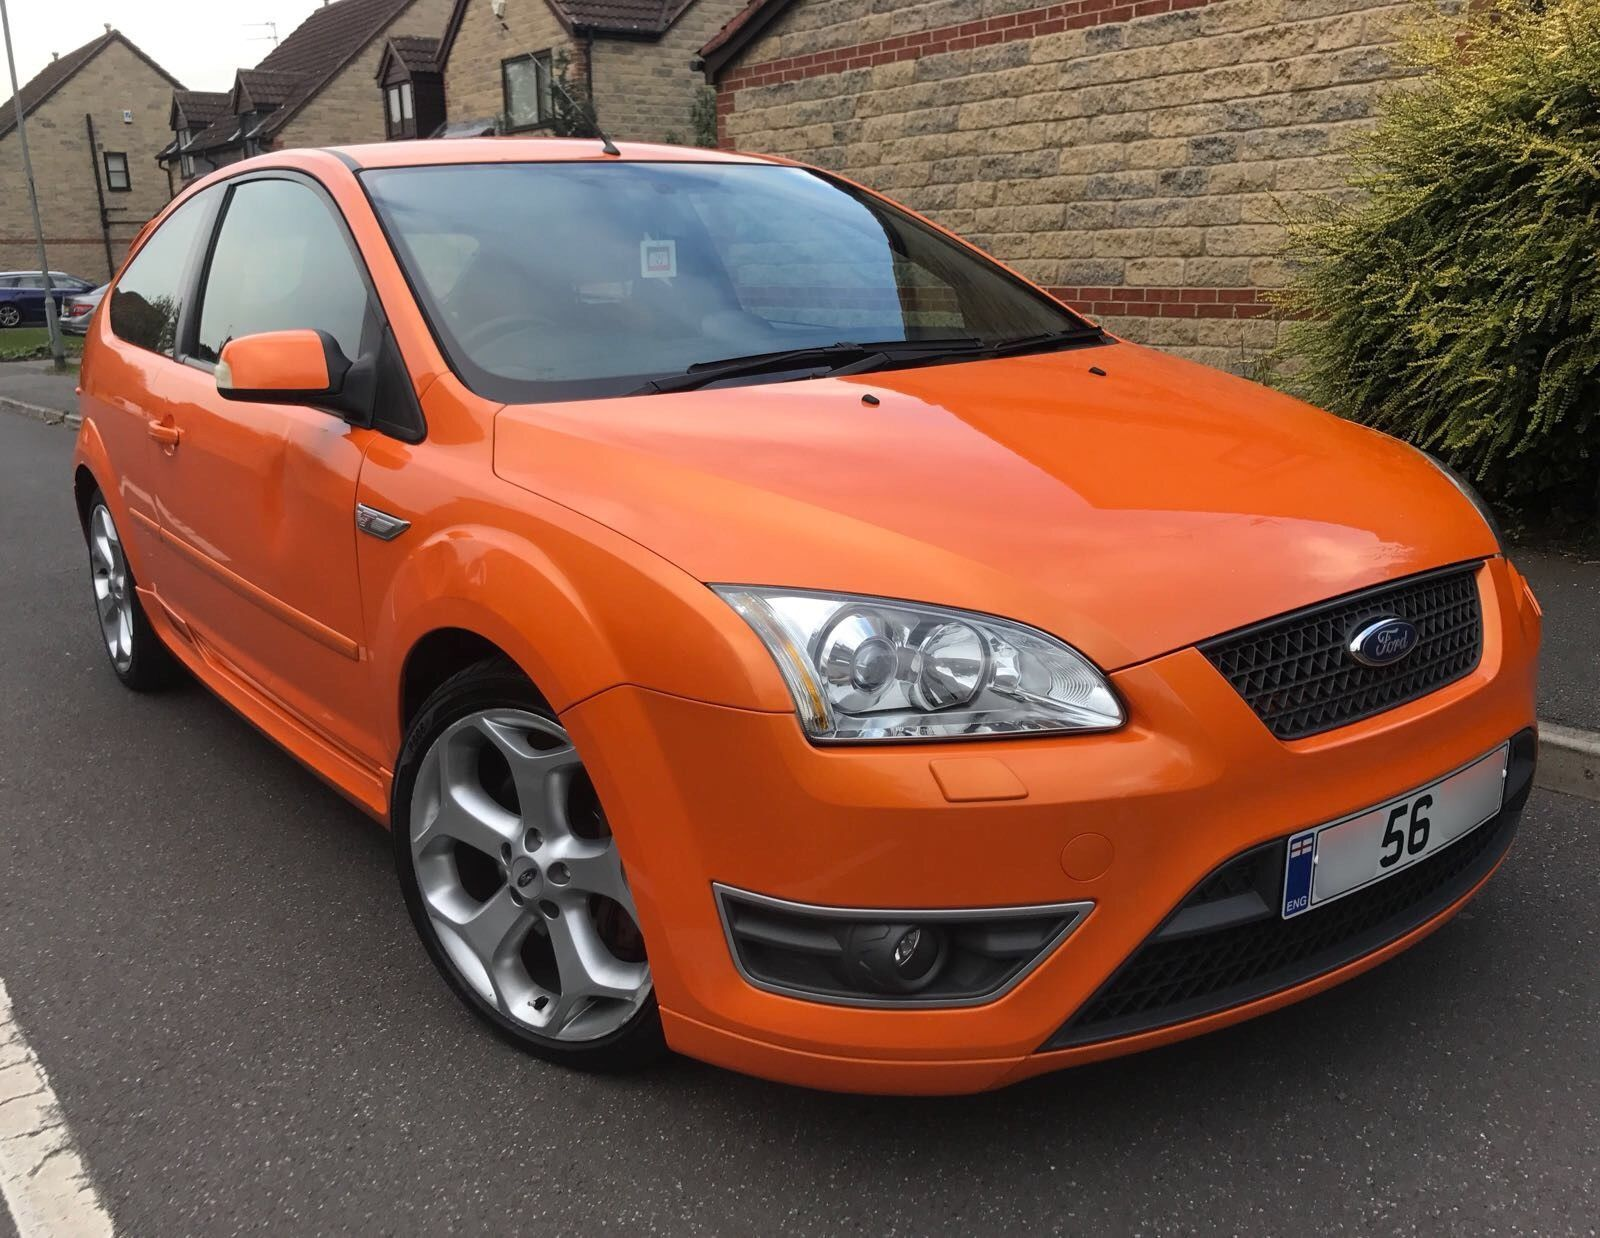 Check Out This Fast Ford 2006 56 Reg Ford Focus 2 5 St2 Orange